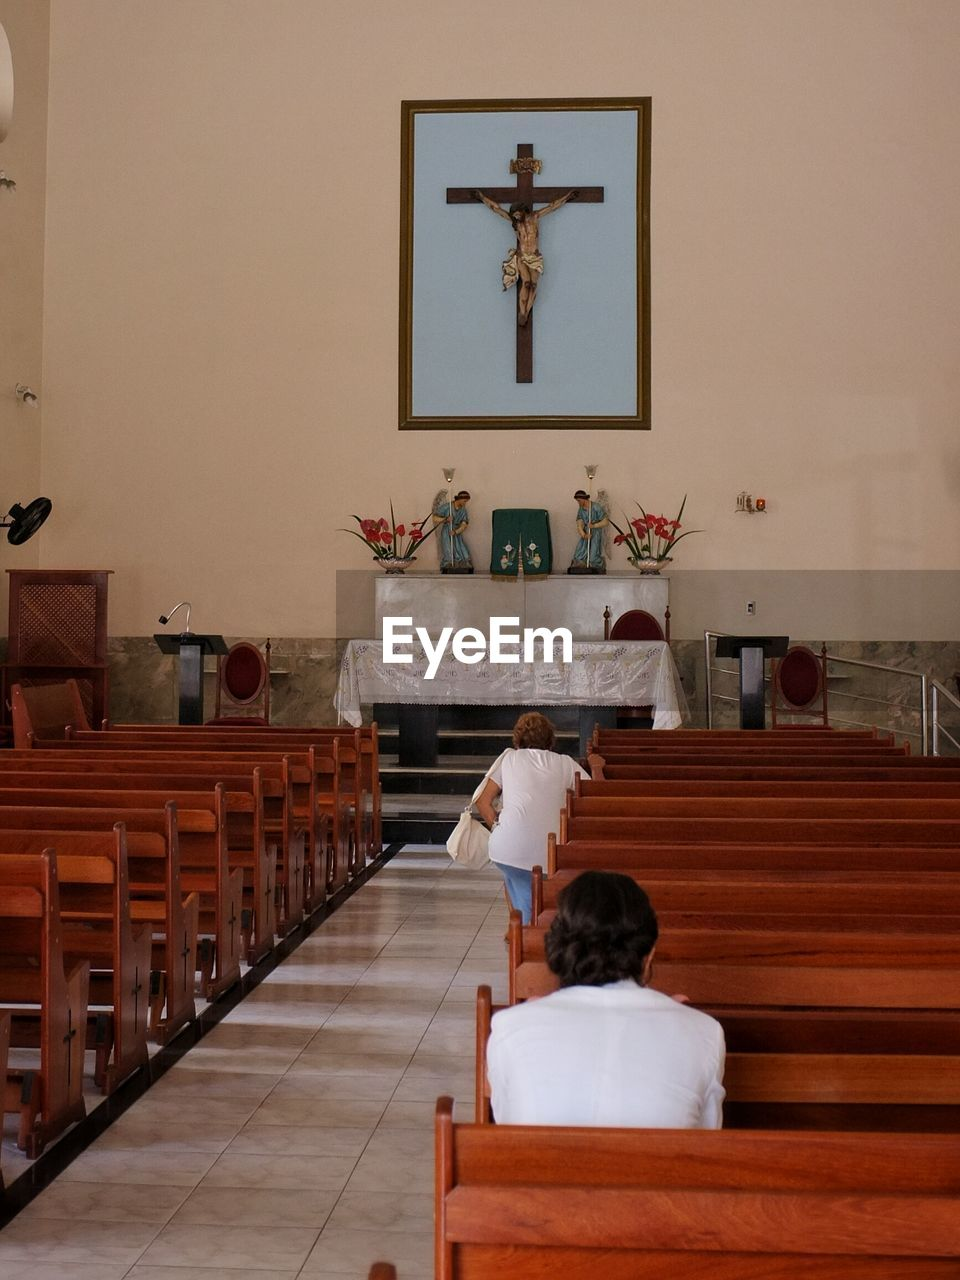 Rear view of people in church